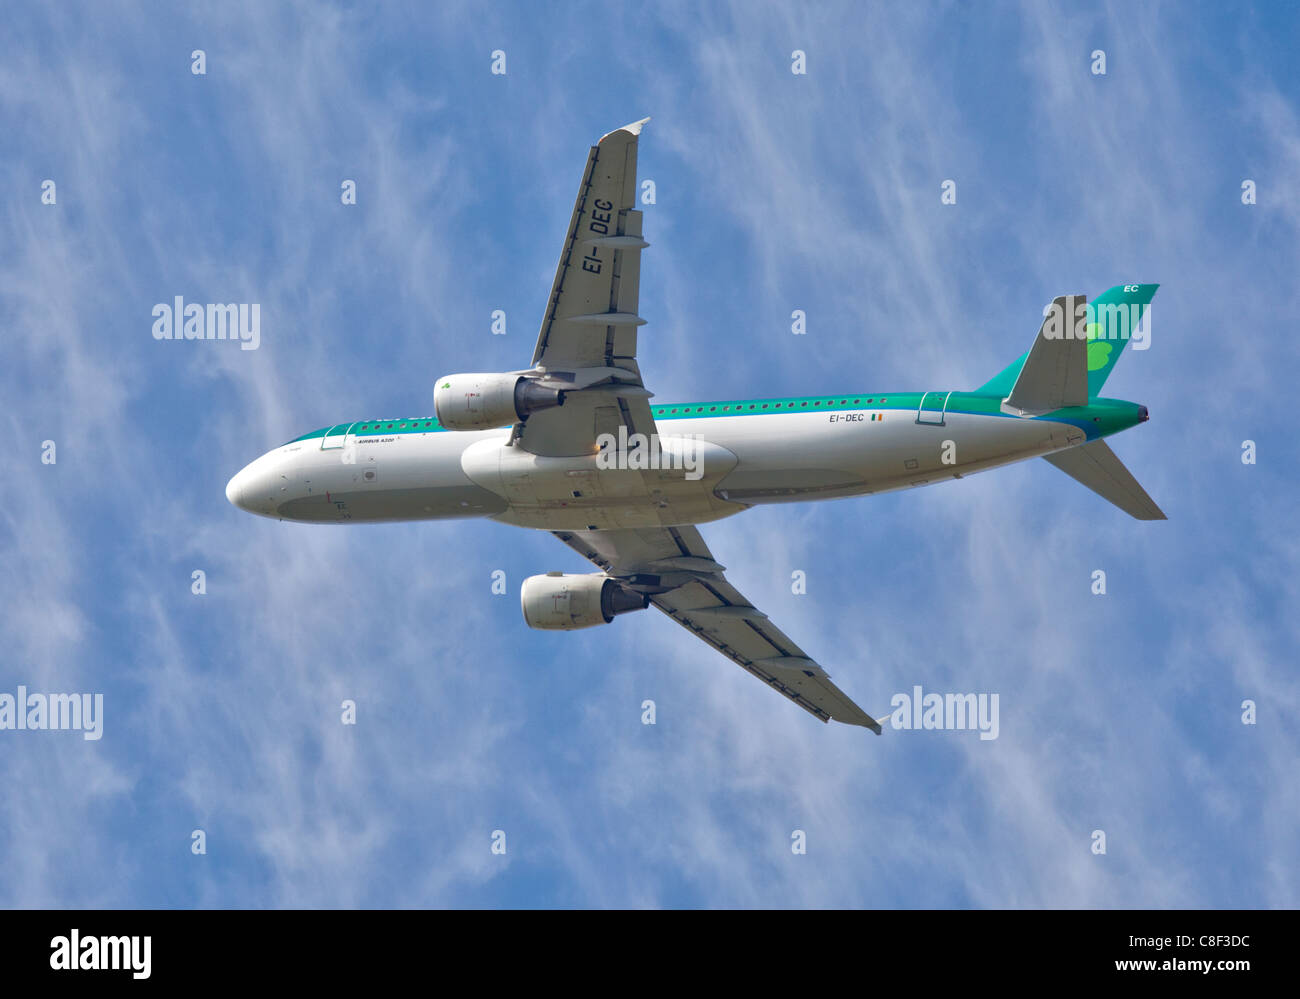 Aer Lingus Airbus A320, Gatwick Airport, Sussex, England - Stock Image